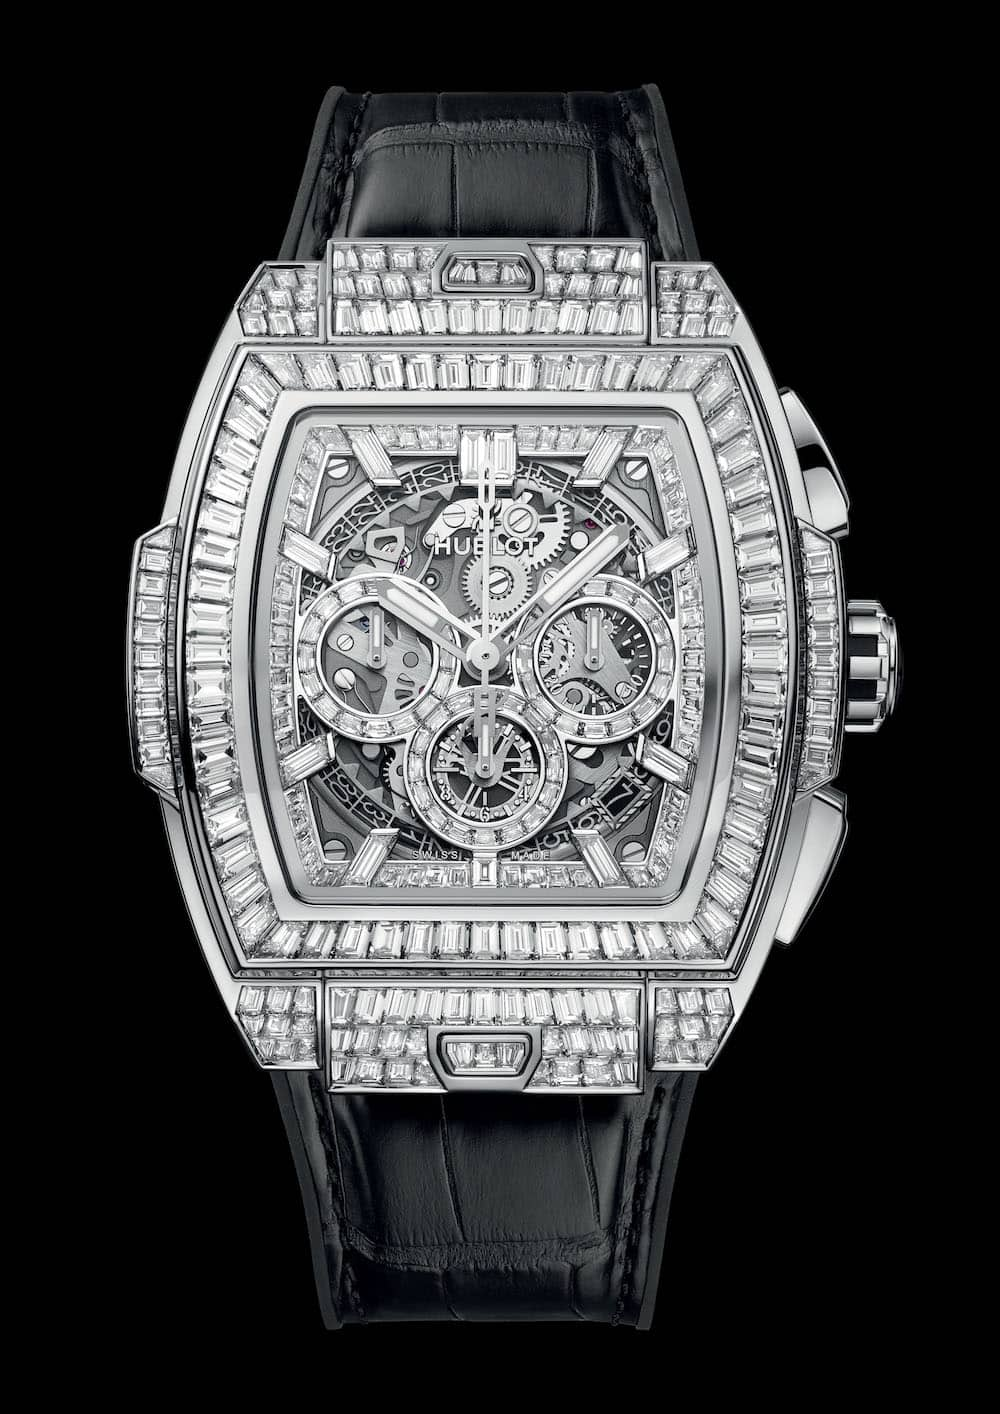 Hublot High Jewellery Collection 7